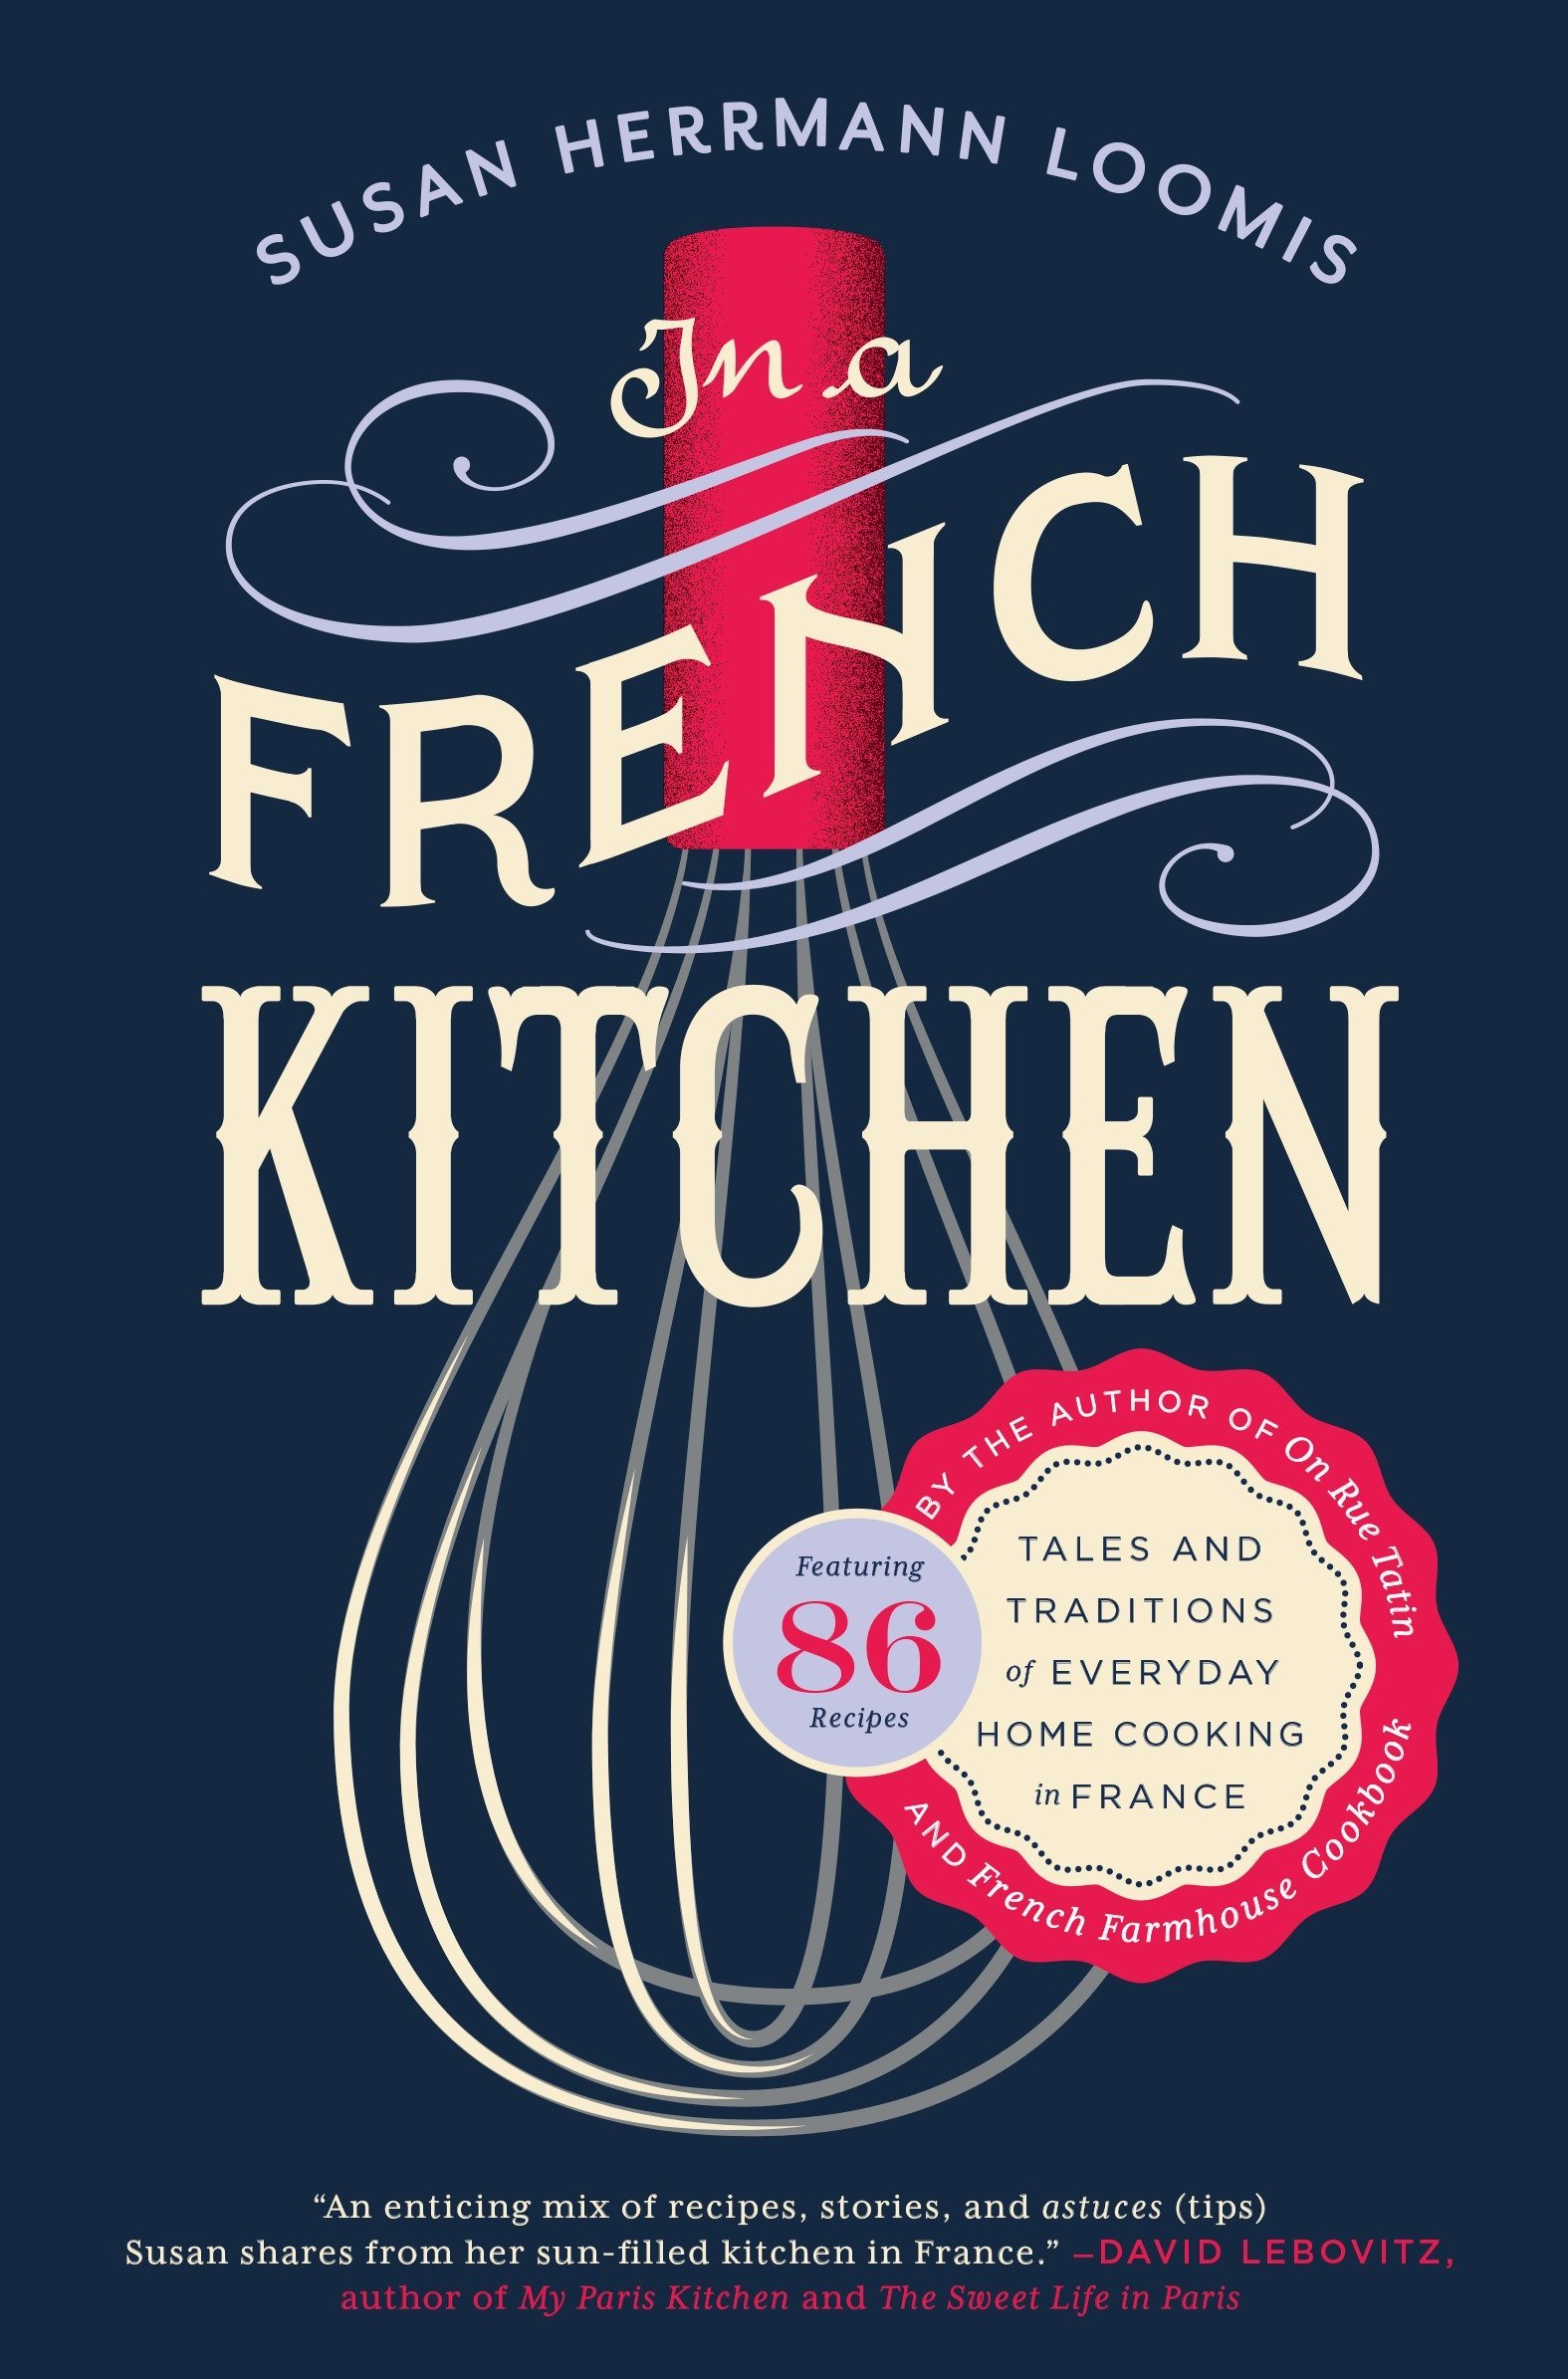 in a french kitchen tales and traditions of everyday home cooking in france susan herrmann loomis 9781592409655 amazoncom books - Kitchen In French